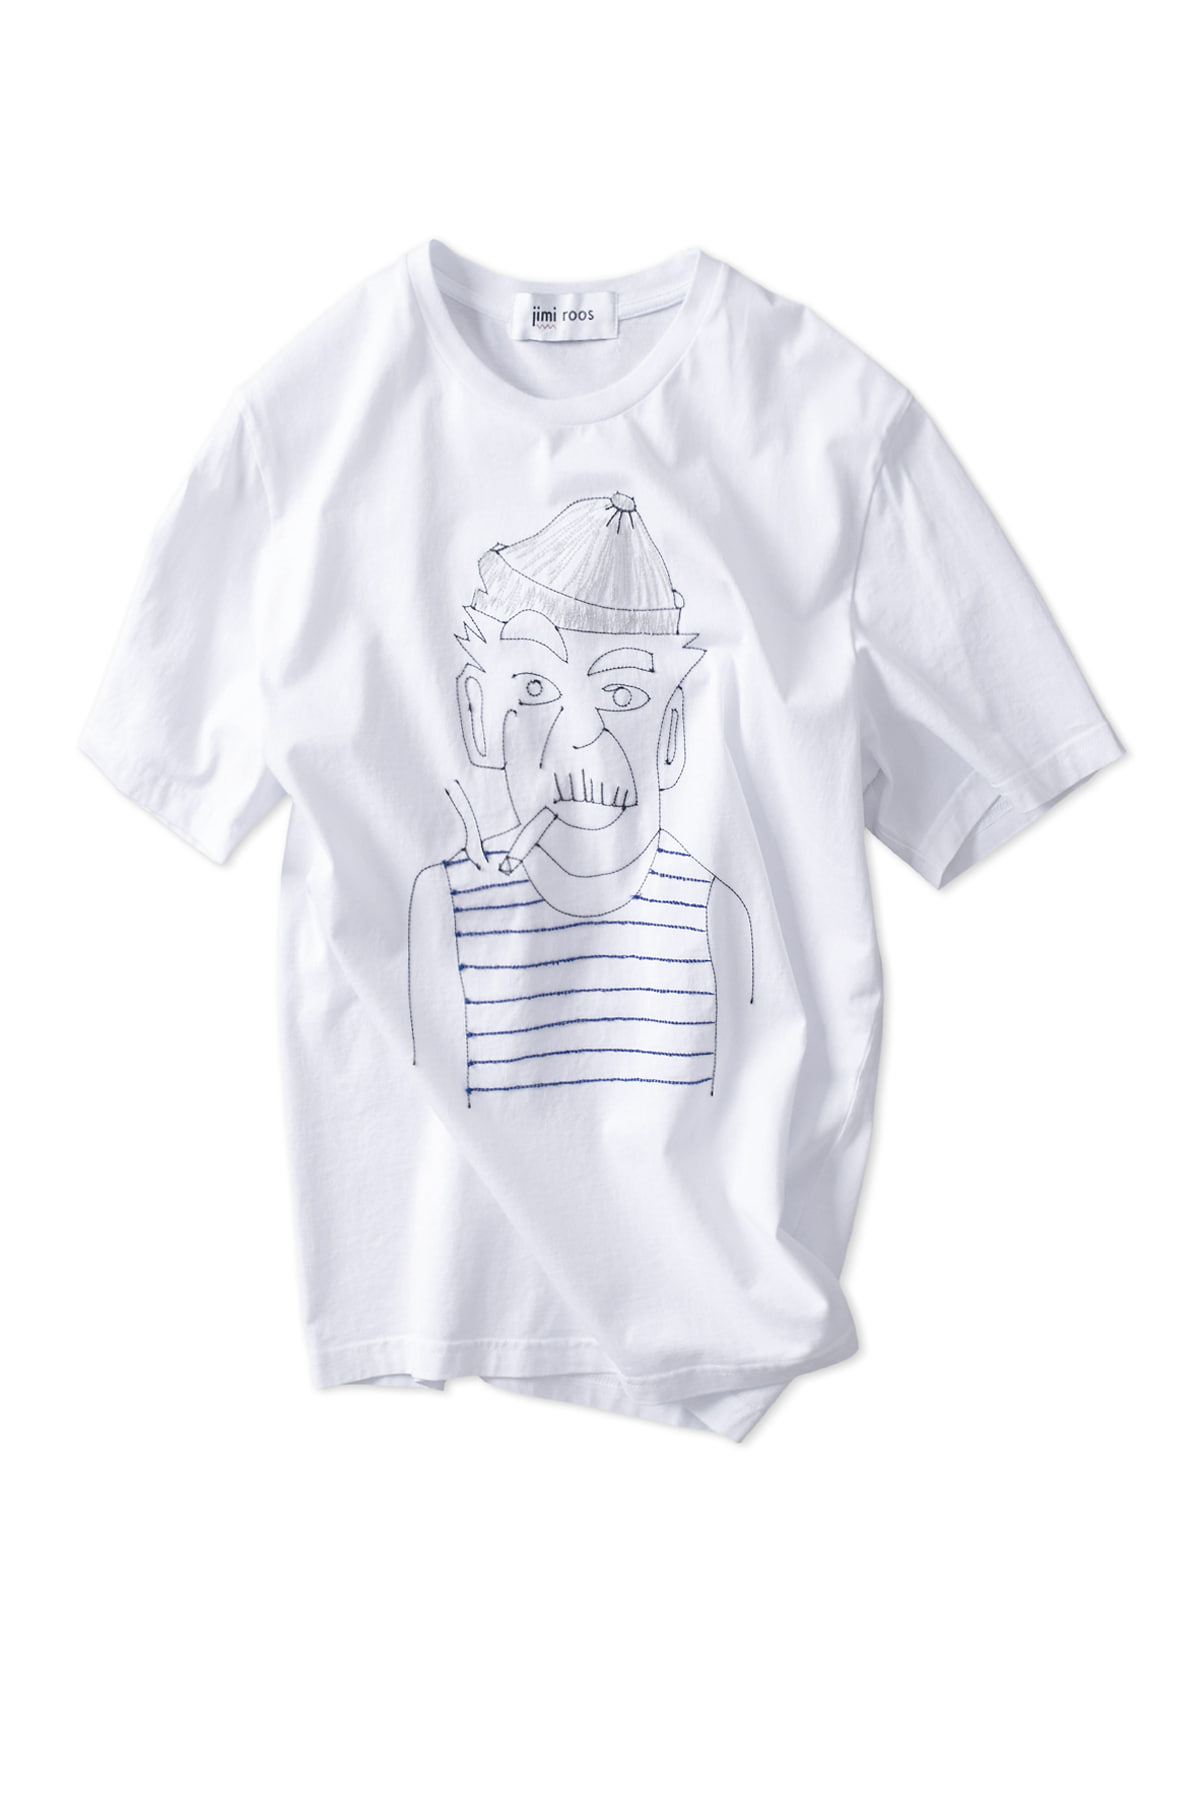 jimi roos : Sailor T-Shirt (White)